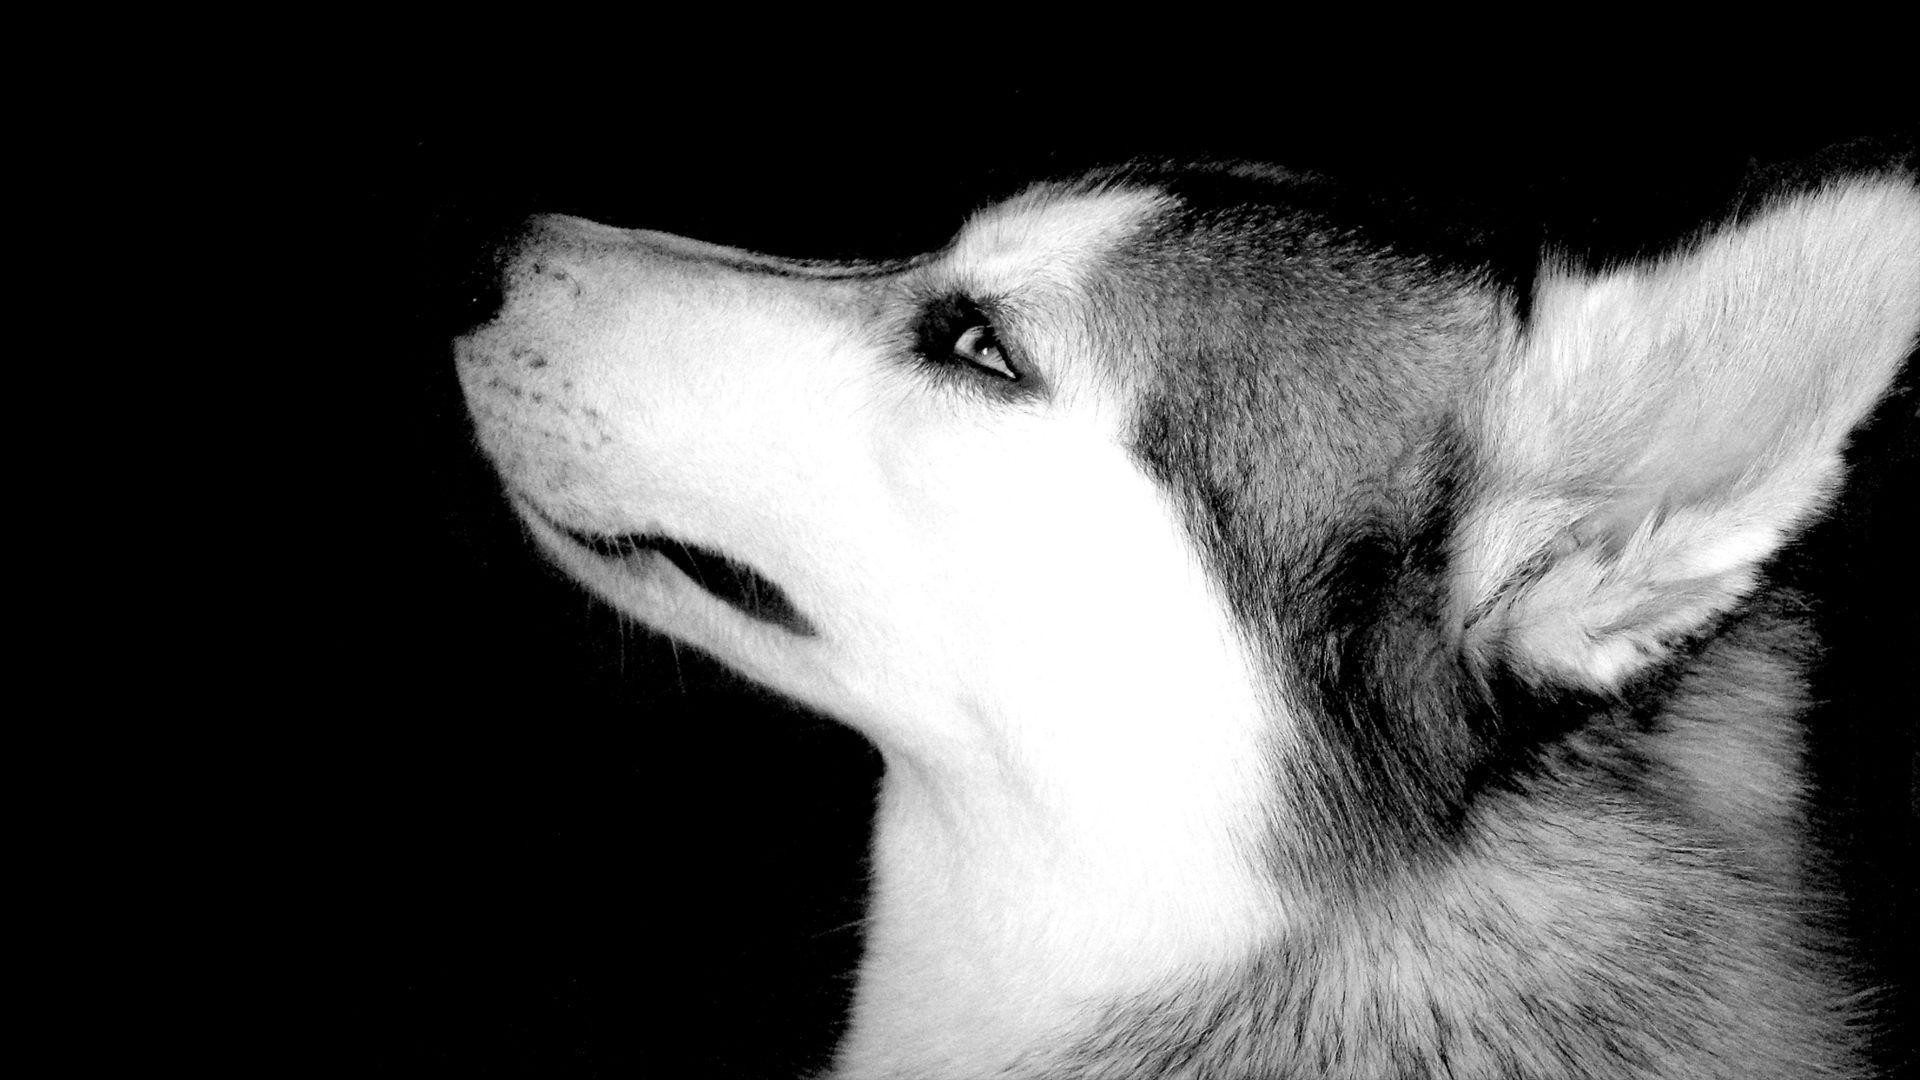 Husky Dog Hd Wallpapers Husky Full Hd Wallpaper And Background Image 1920x1080